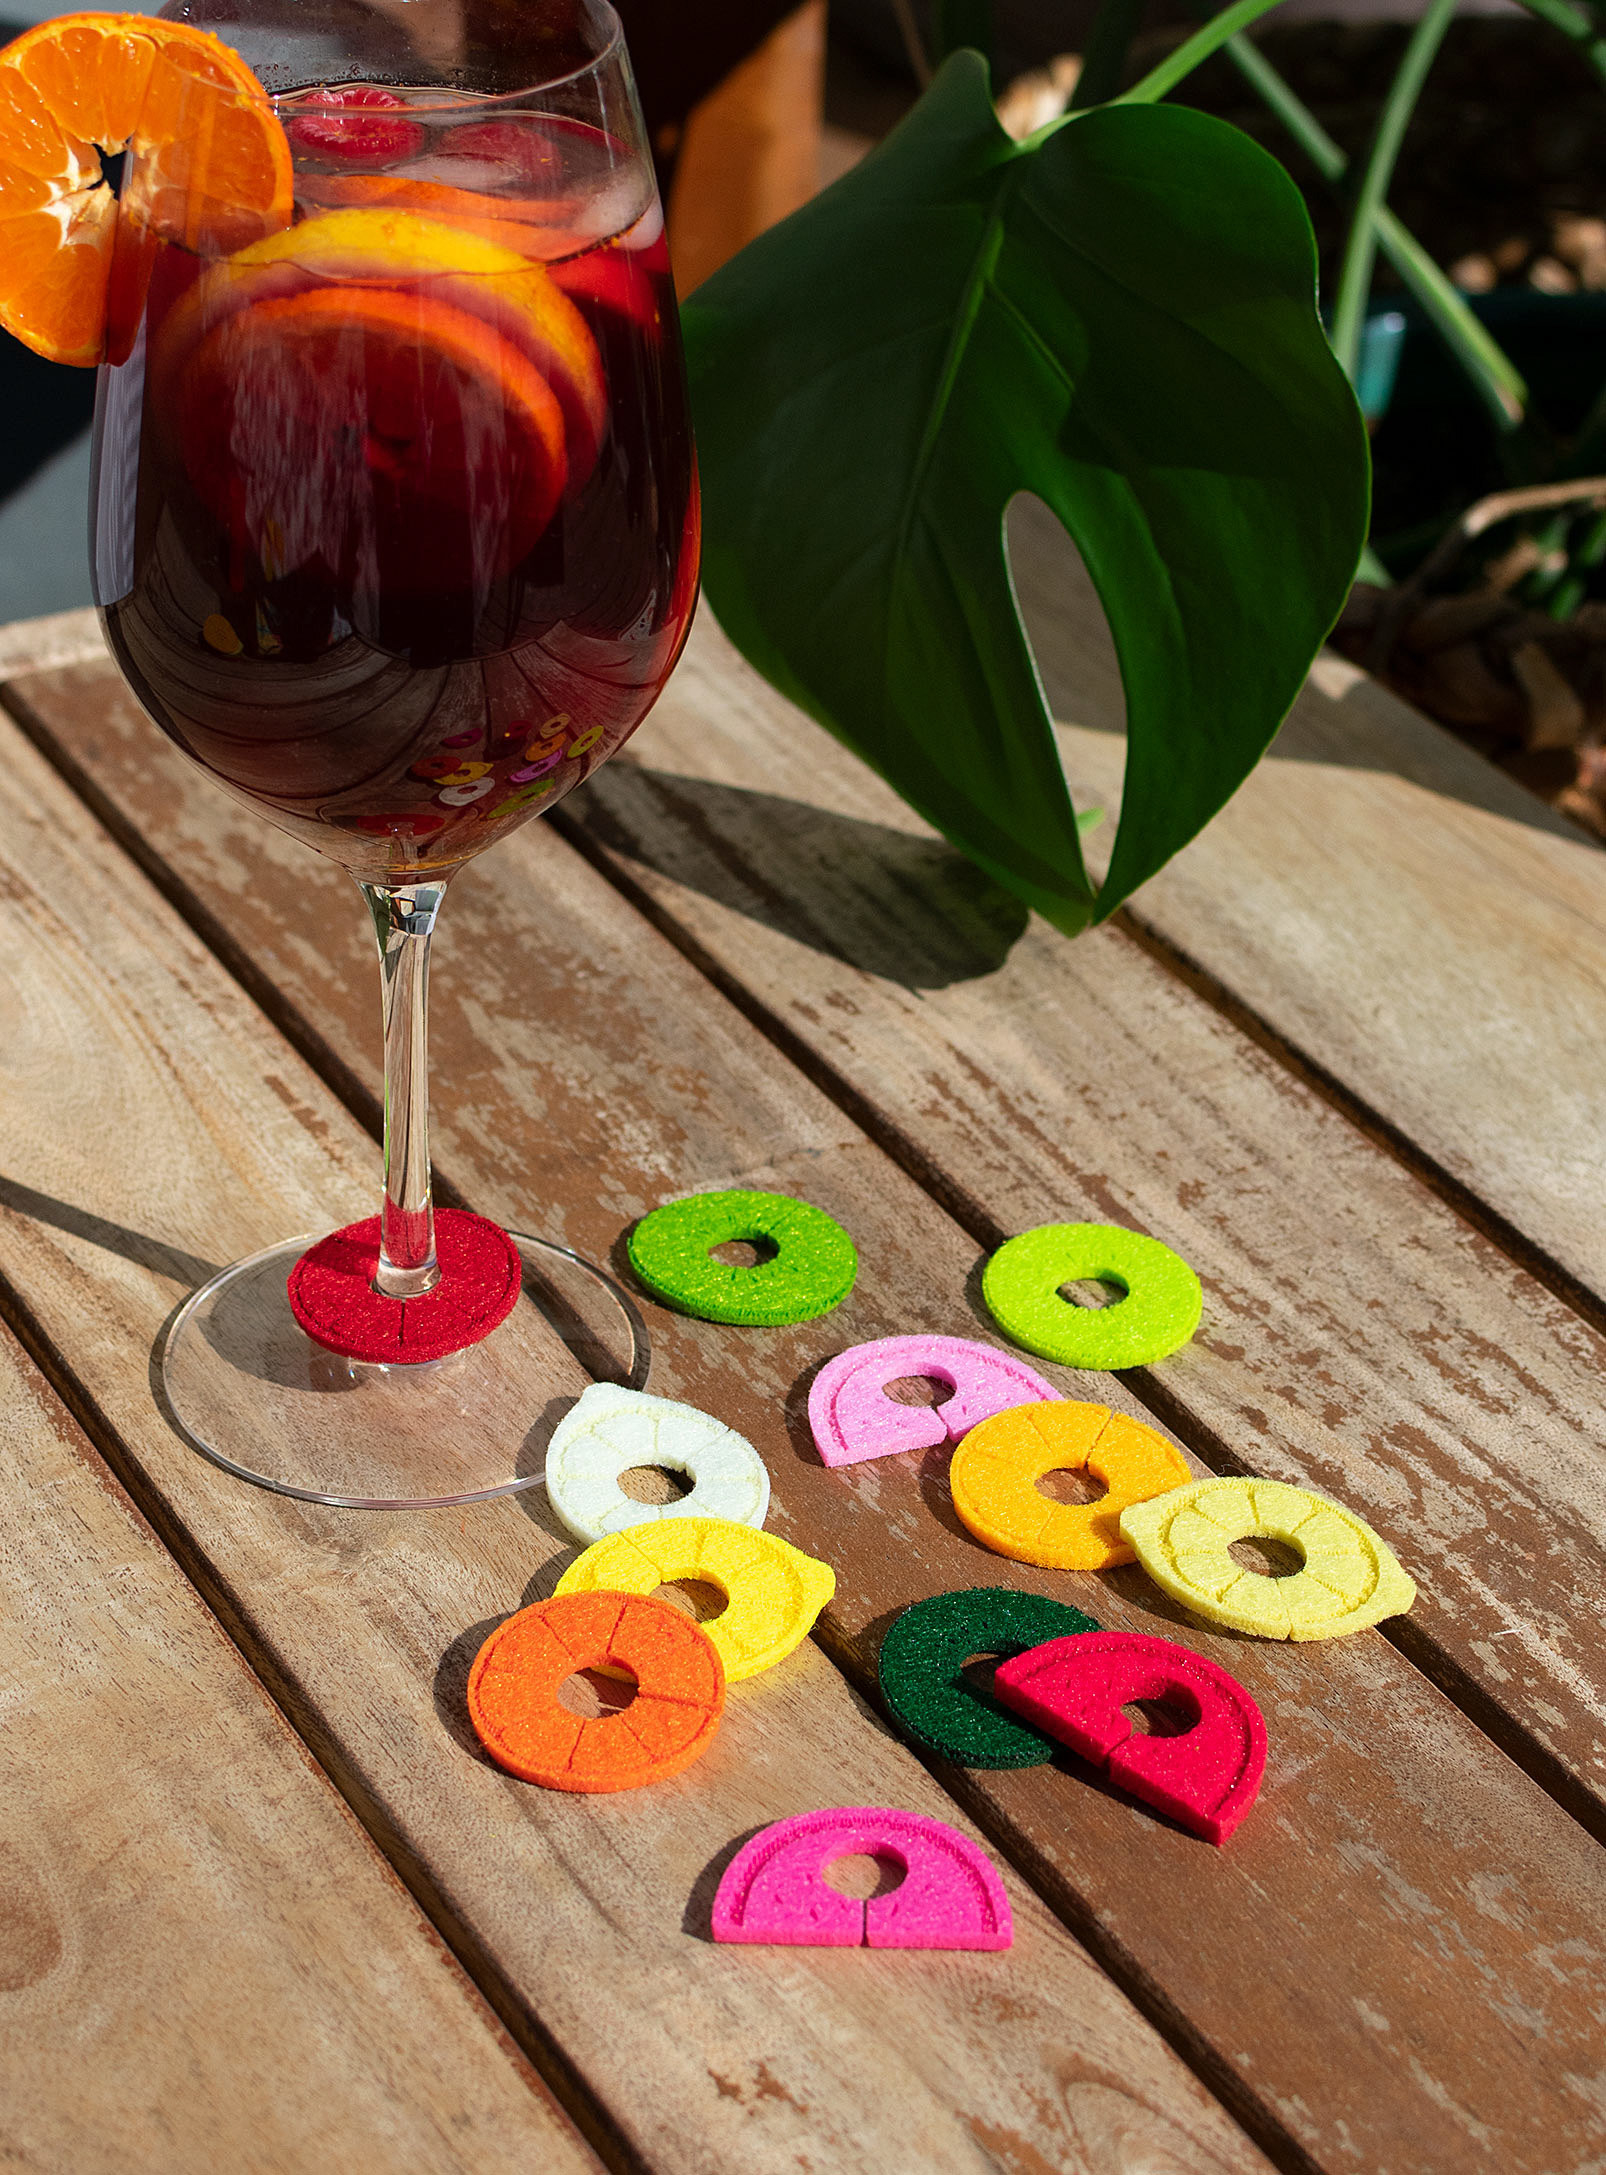 A set of felt fruit-shaped drink markers next to a full wine glass